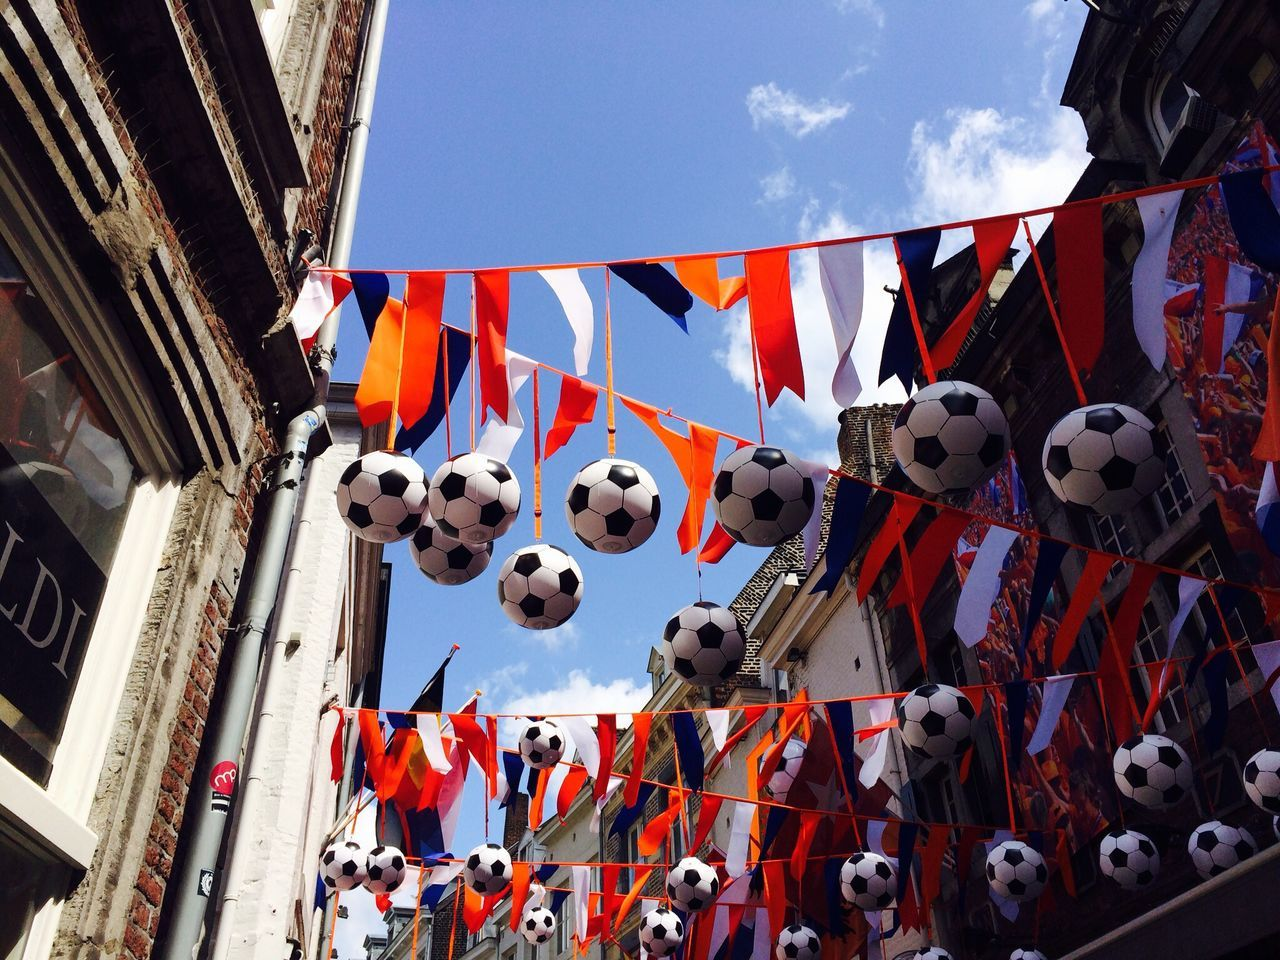 Low angle view of soccer balls hanging from rope against sky